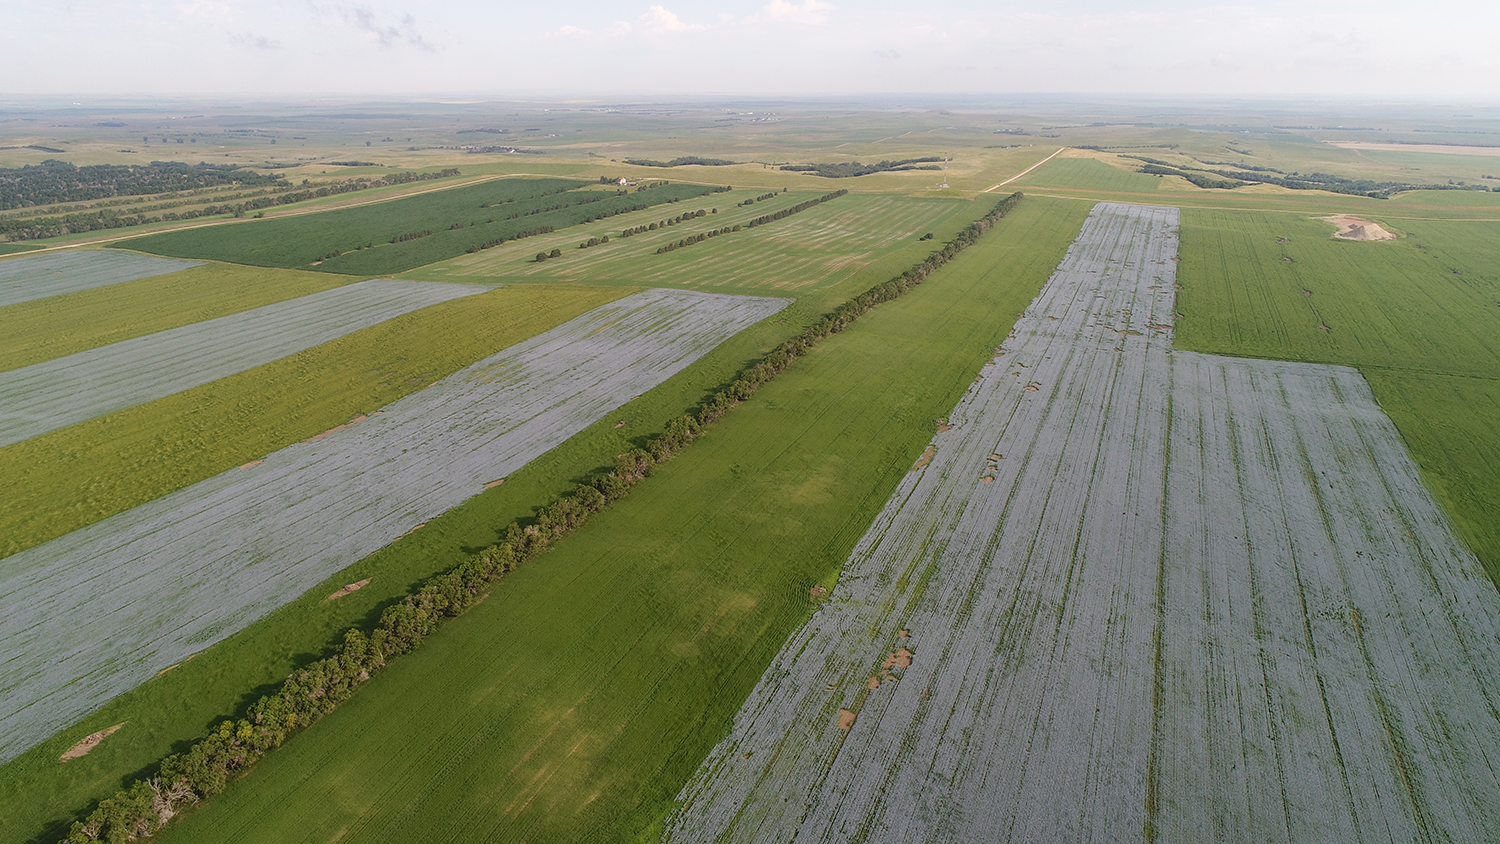 An aerial image of a flaxseed field